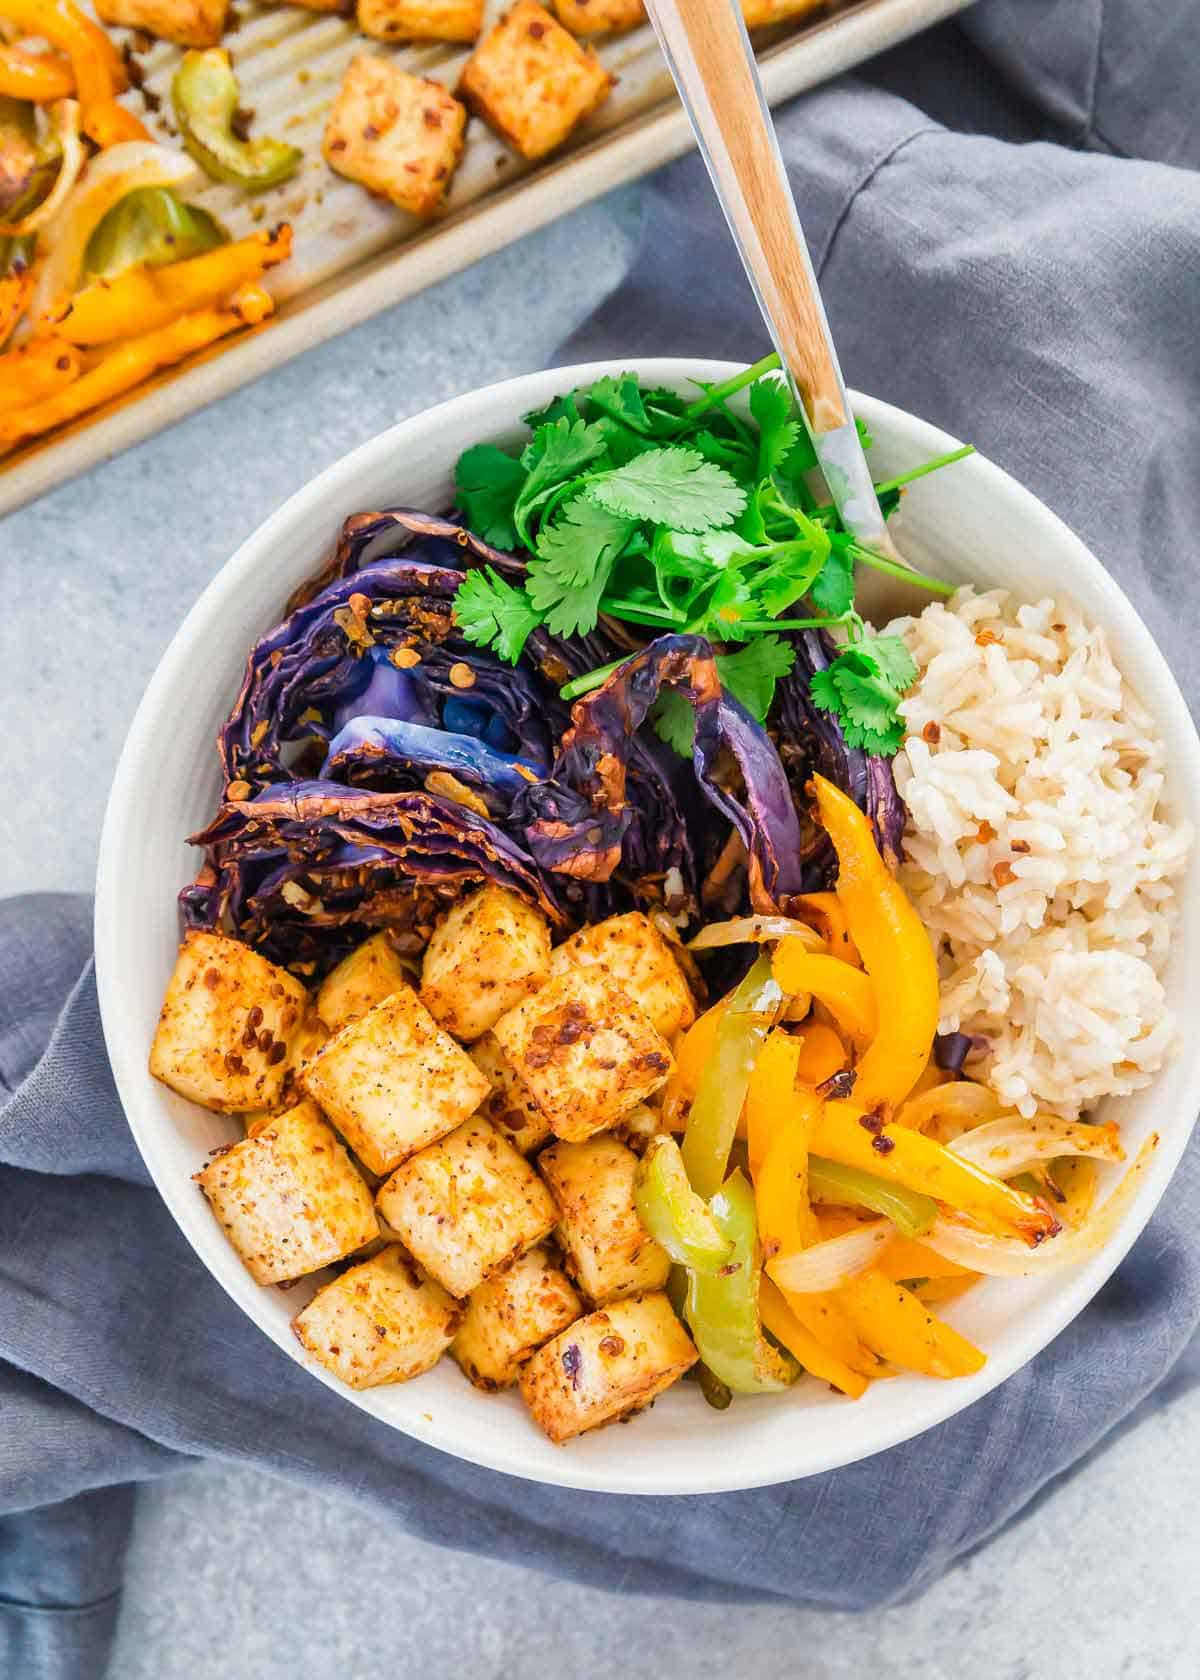 Crispy roasted tofu meal prep with cabbage, peppers, onions and brown rice made on a sheet pan is easy and nutritious.